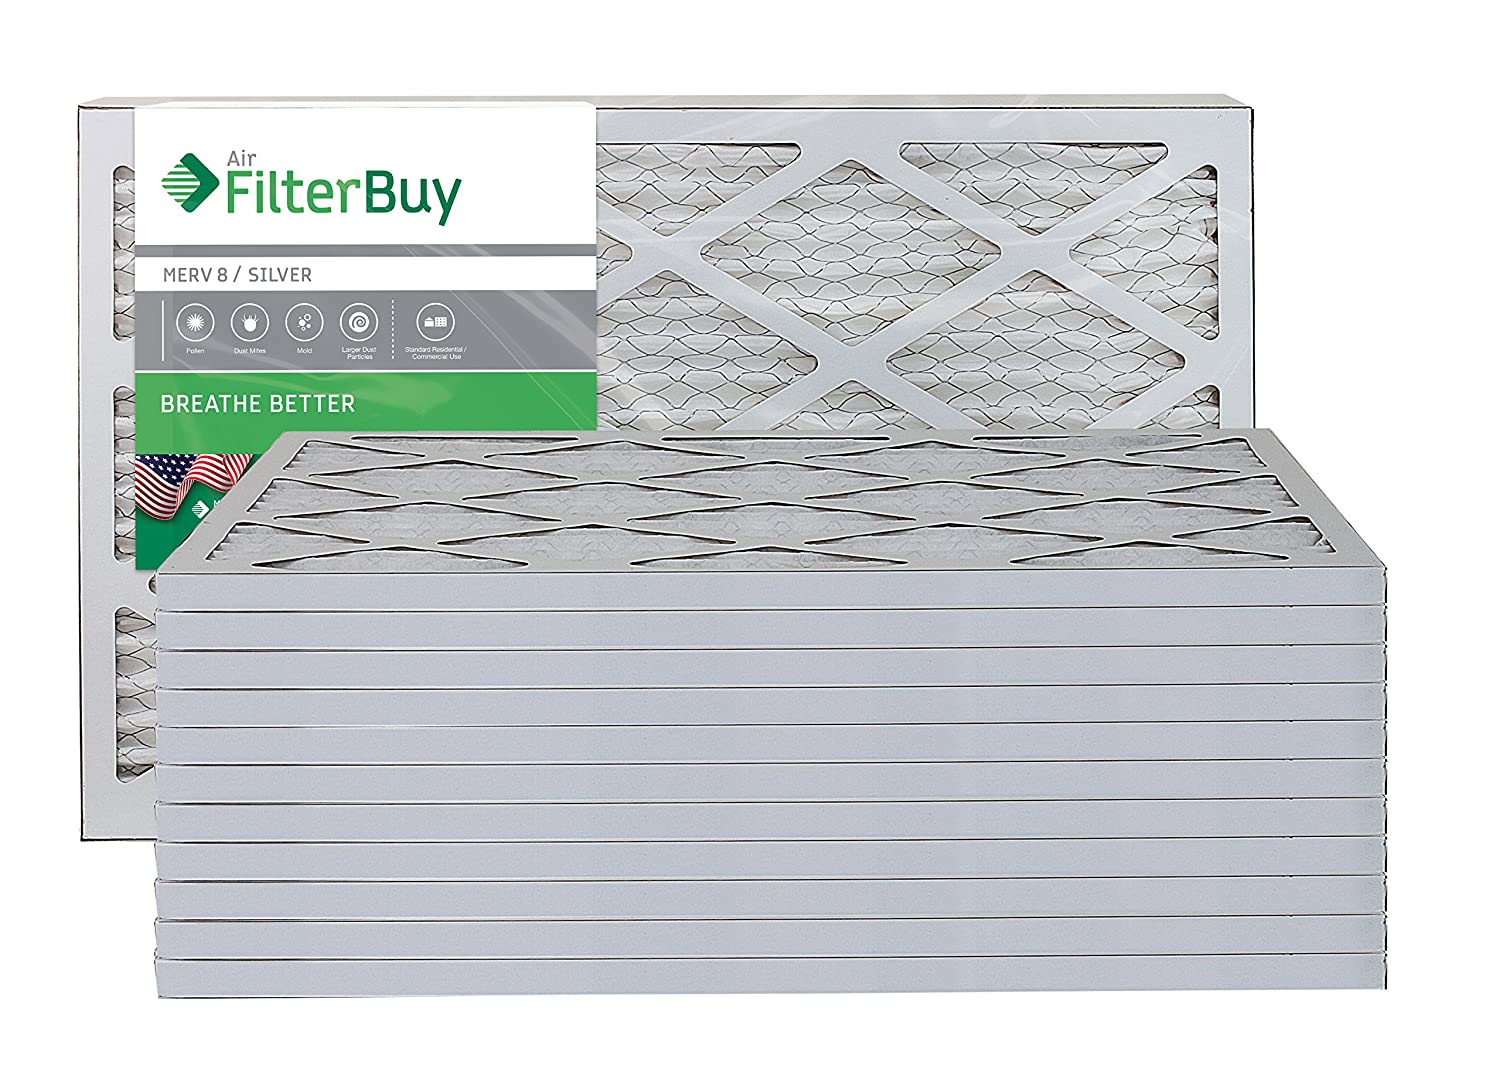 FilterBuy 14x24x1 MERV 8 Pleated AC Furnace Air Filter, (Pack of 12 Filters), 14x24x1 – Silver